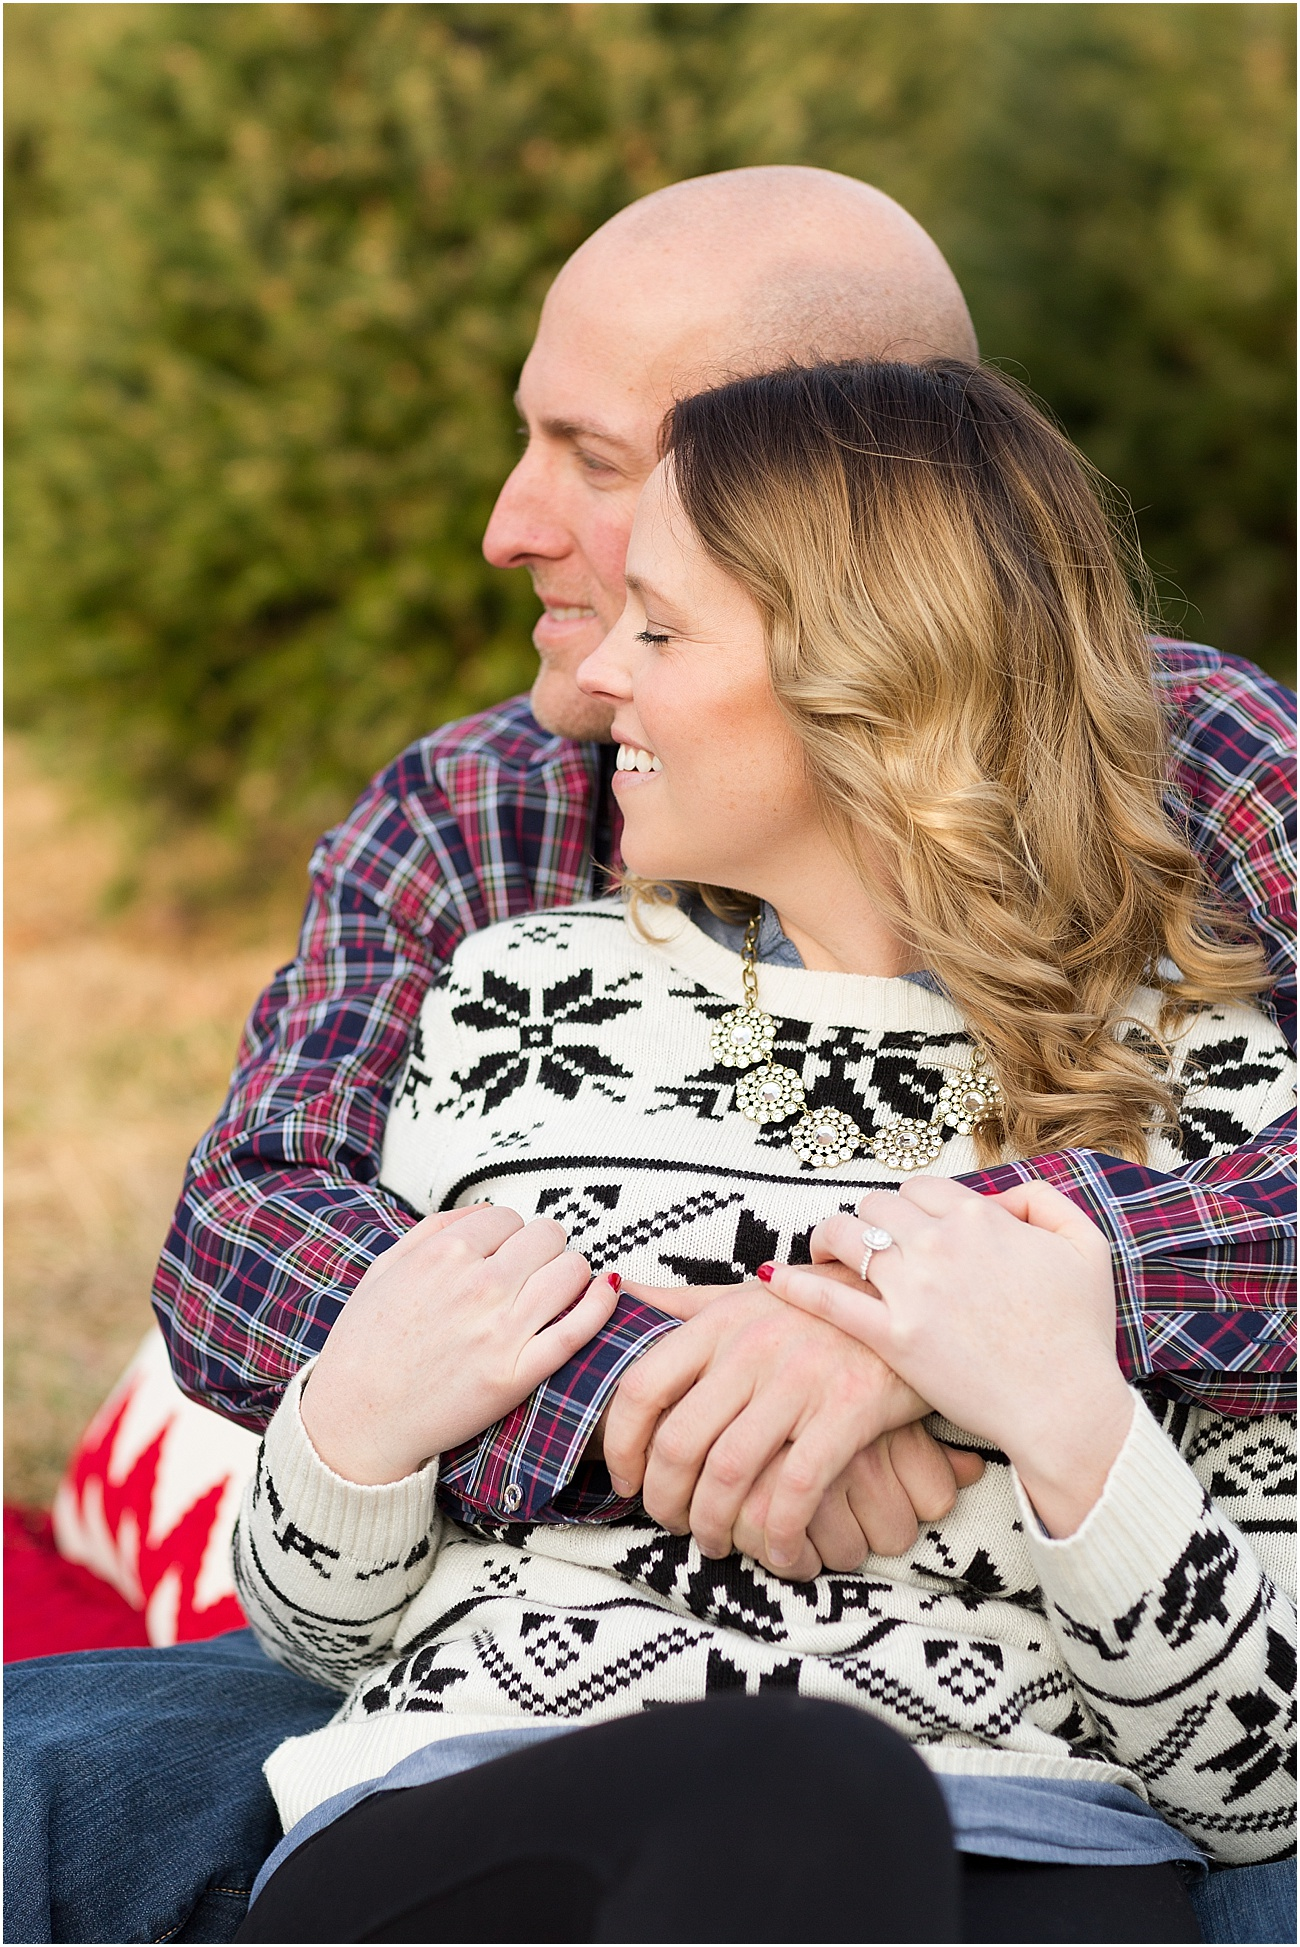 Pine_Valley_Farms_Engagement_Maryland_Wedding_Photographer_0007